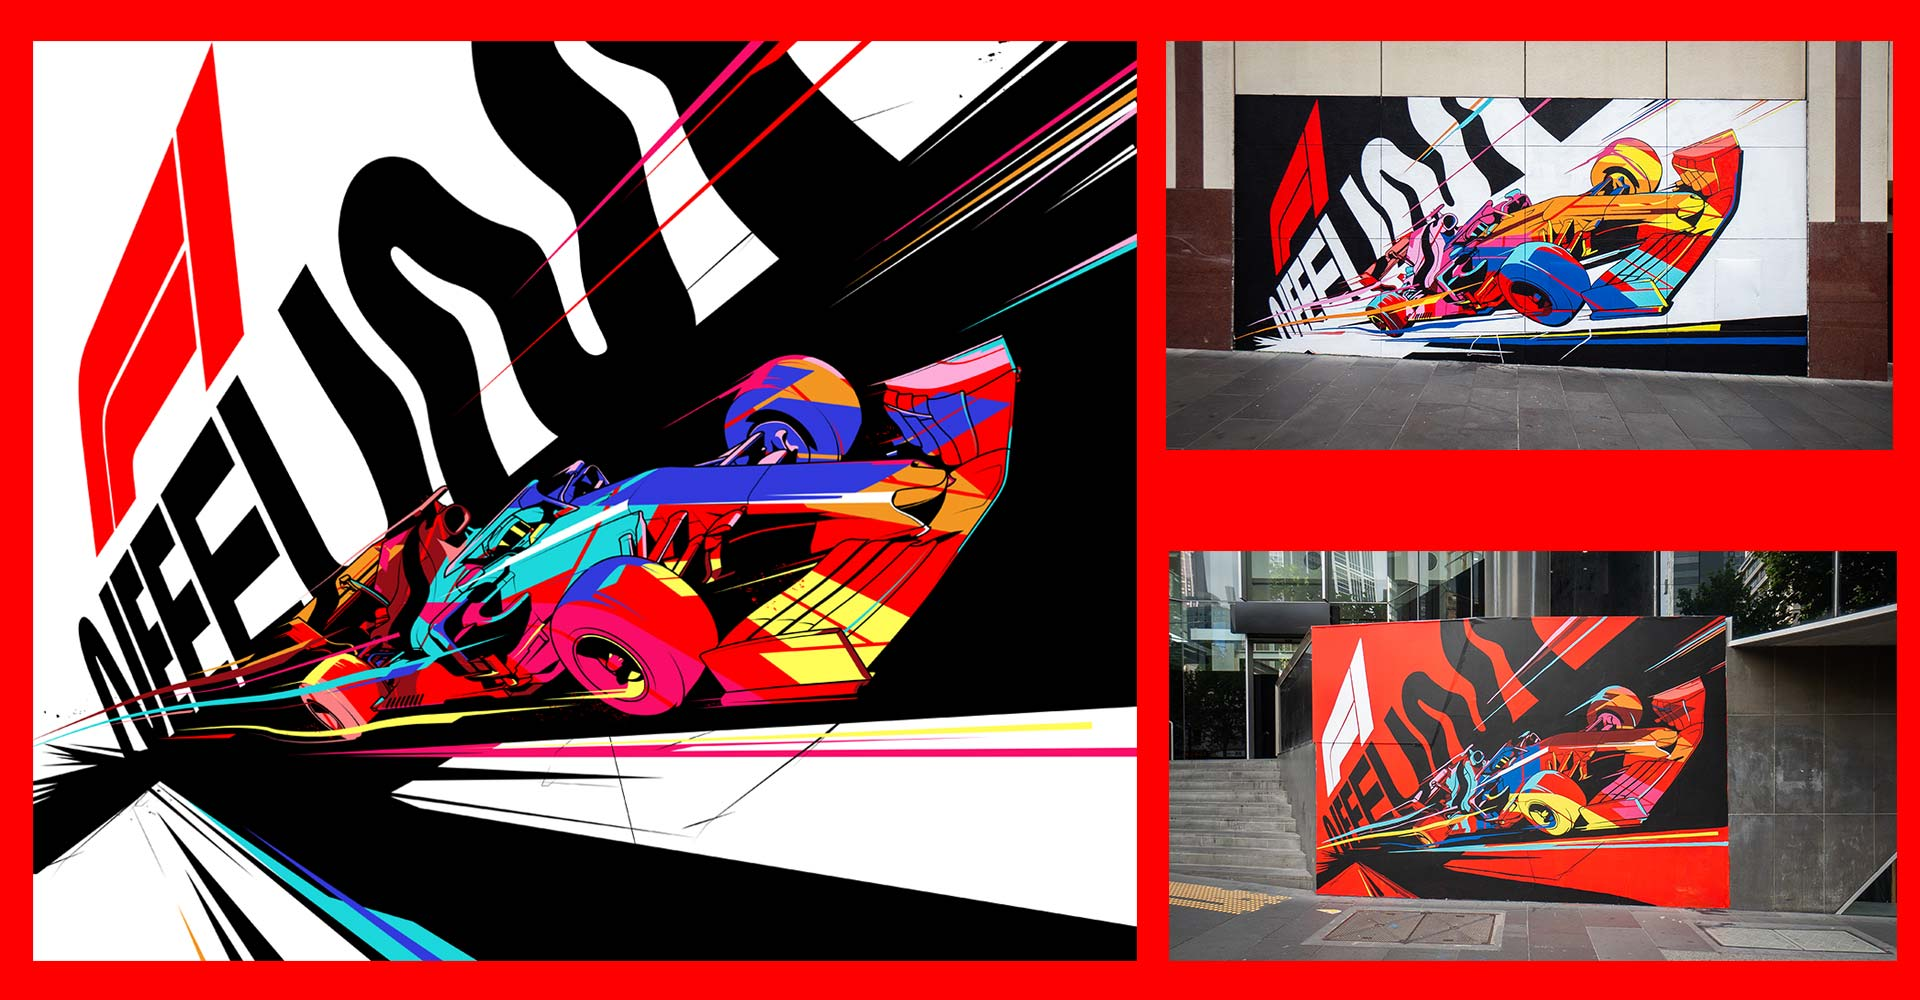 Formula 1 mural artworks by Ben Hasler